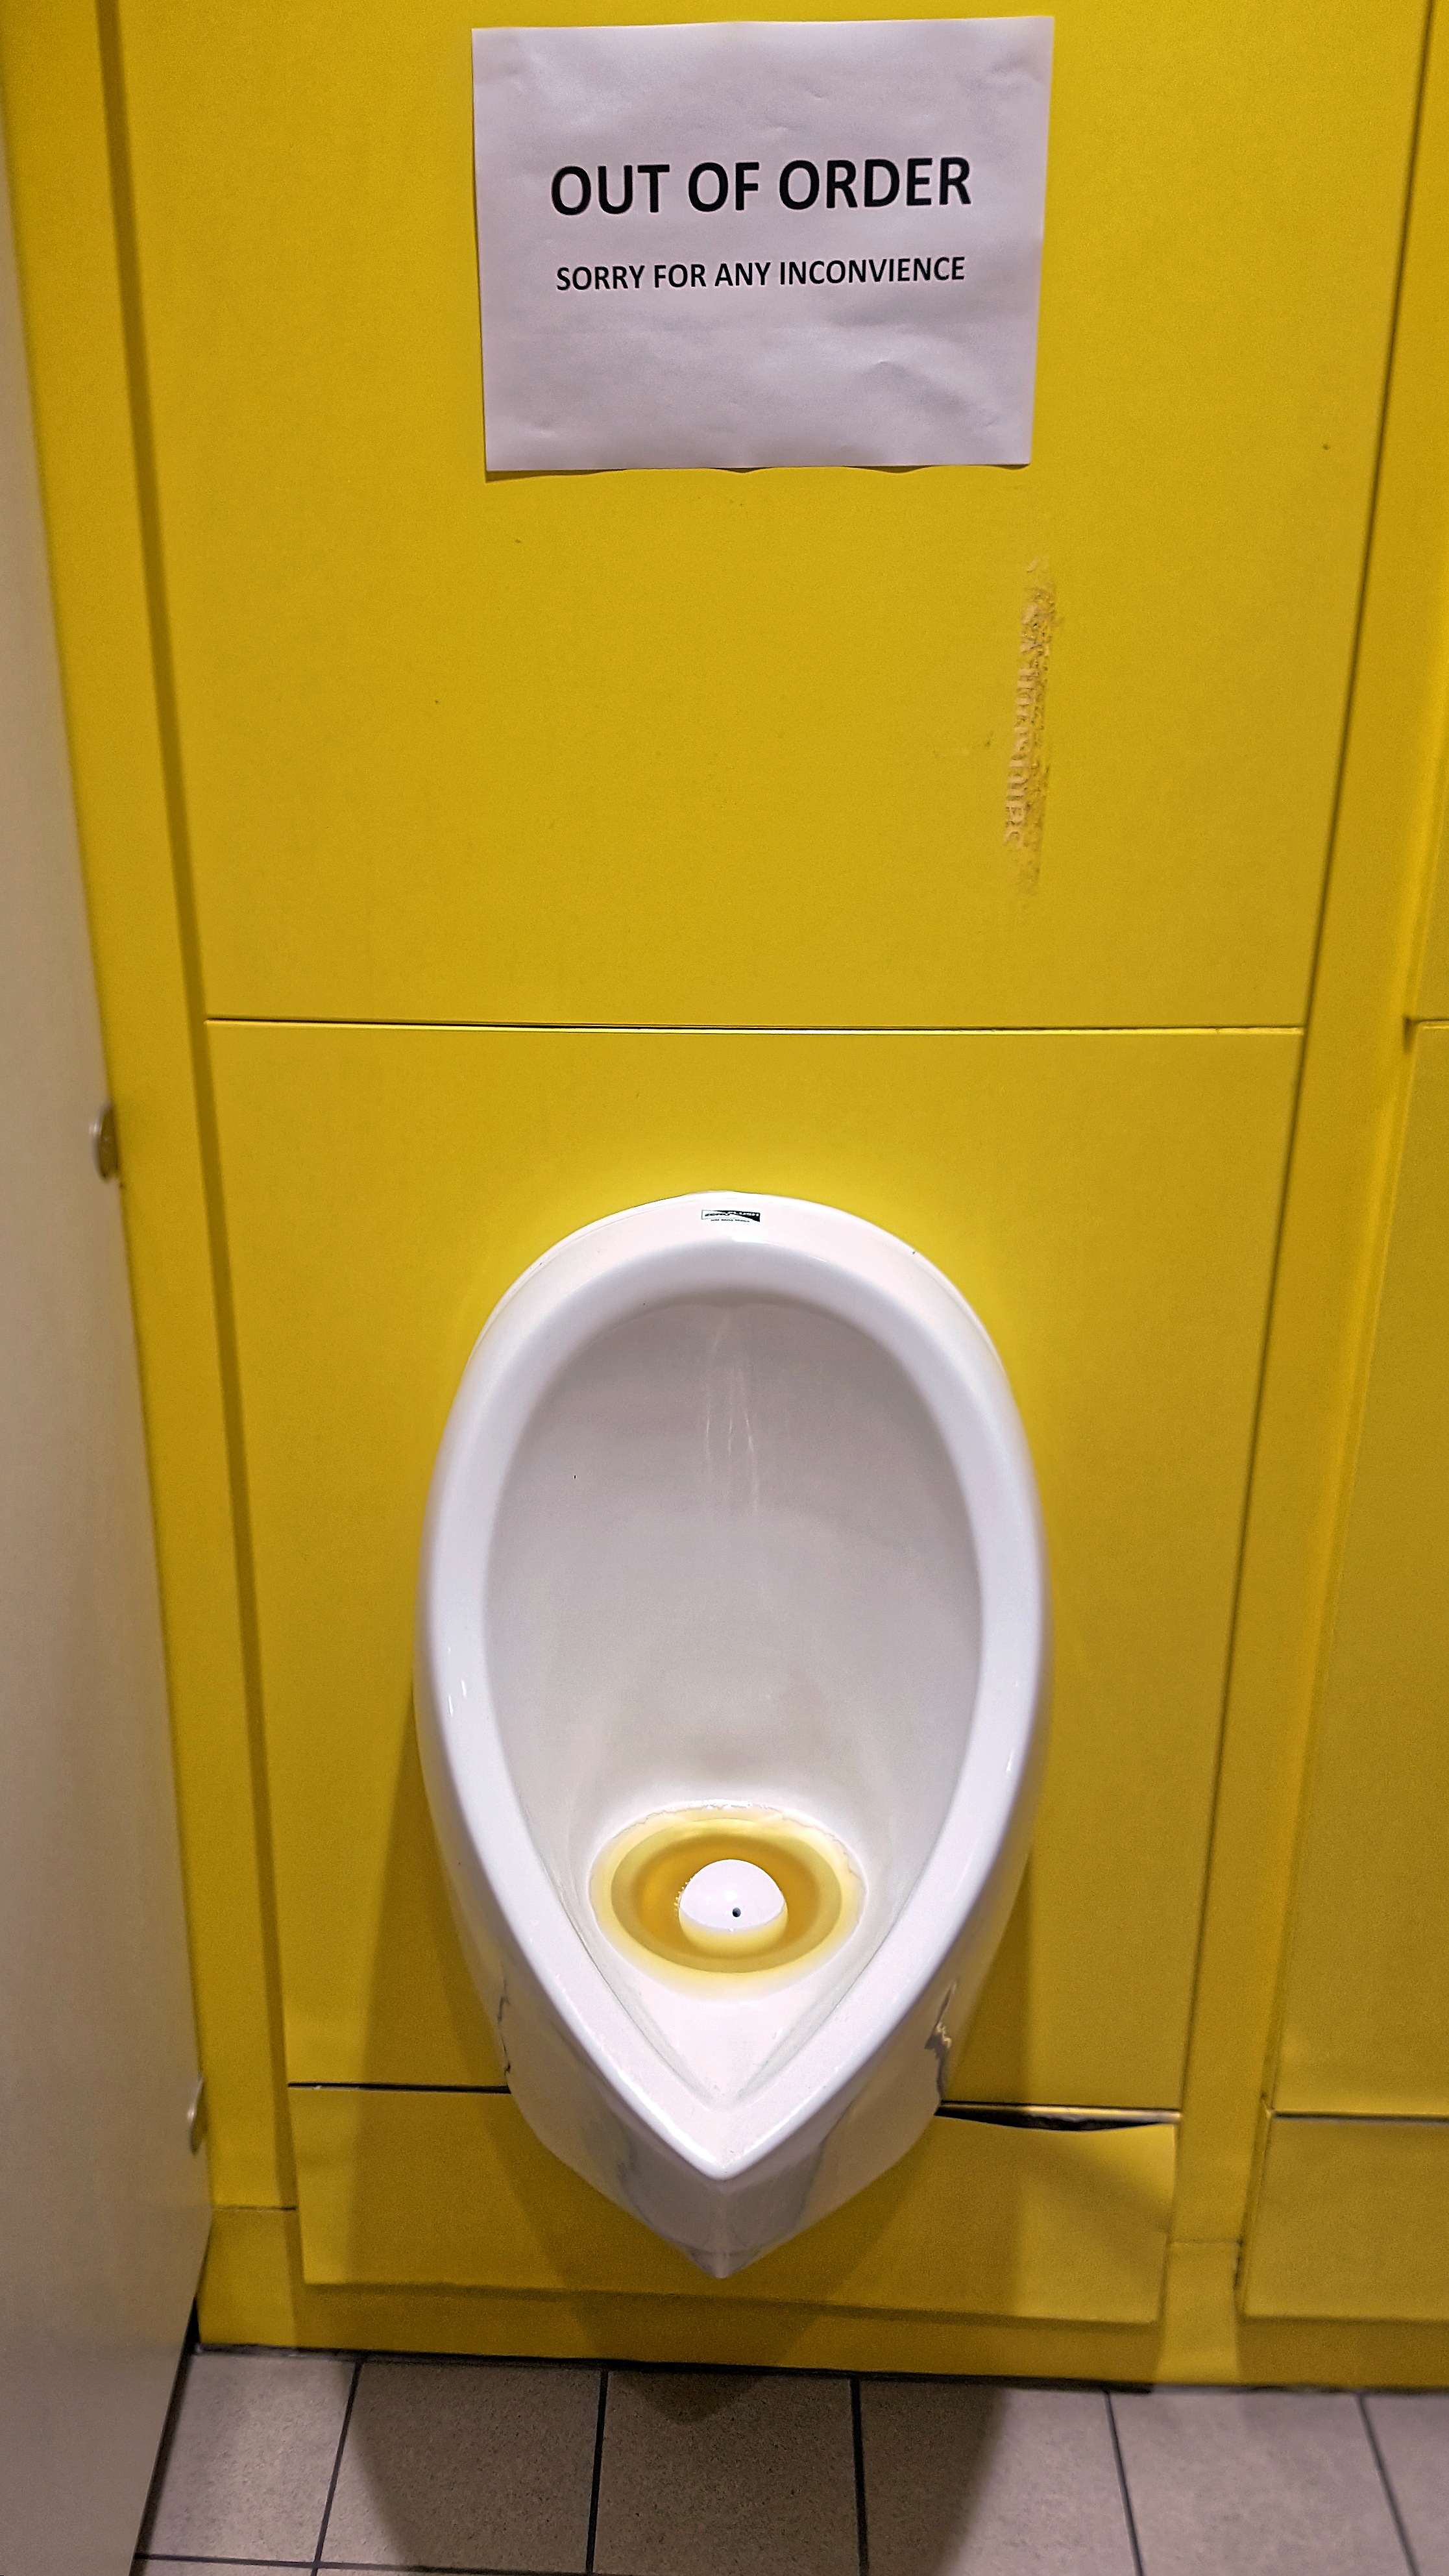 File Zero Flush Blocked Urinal And Out Of Order Sign At